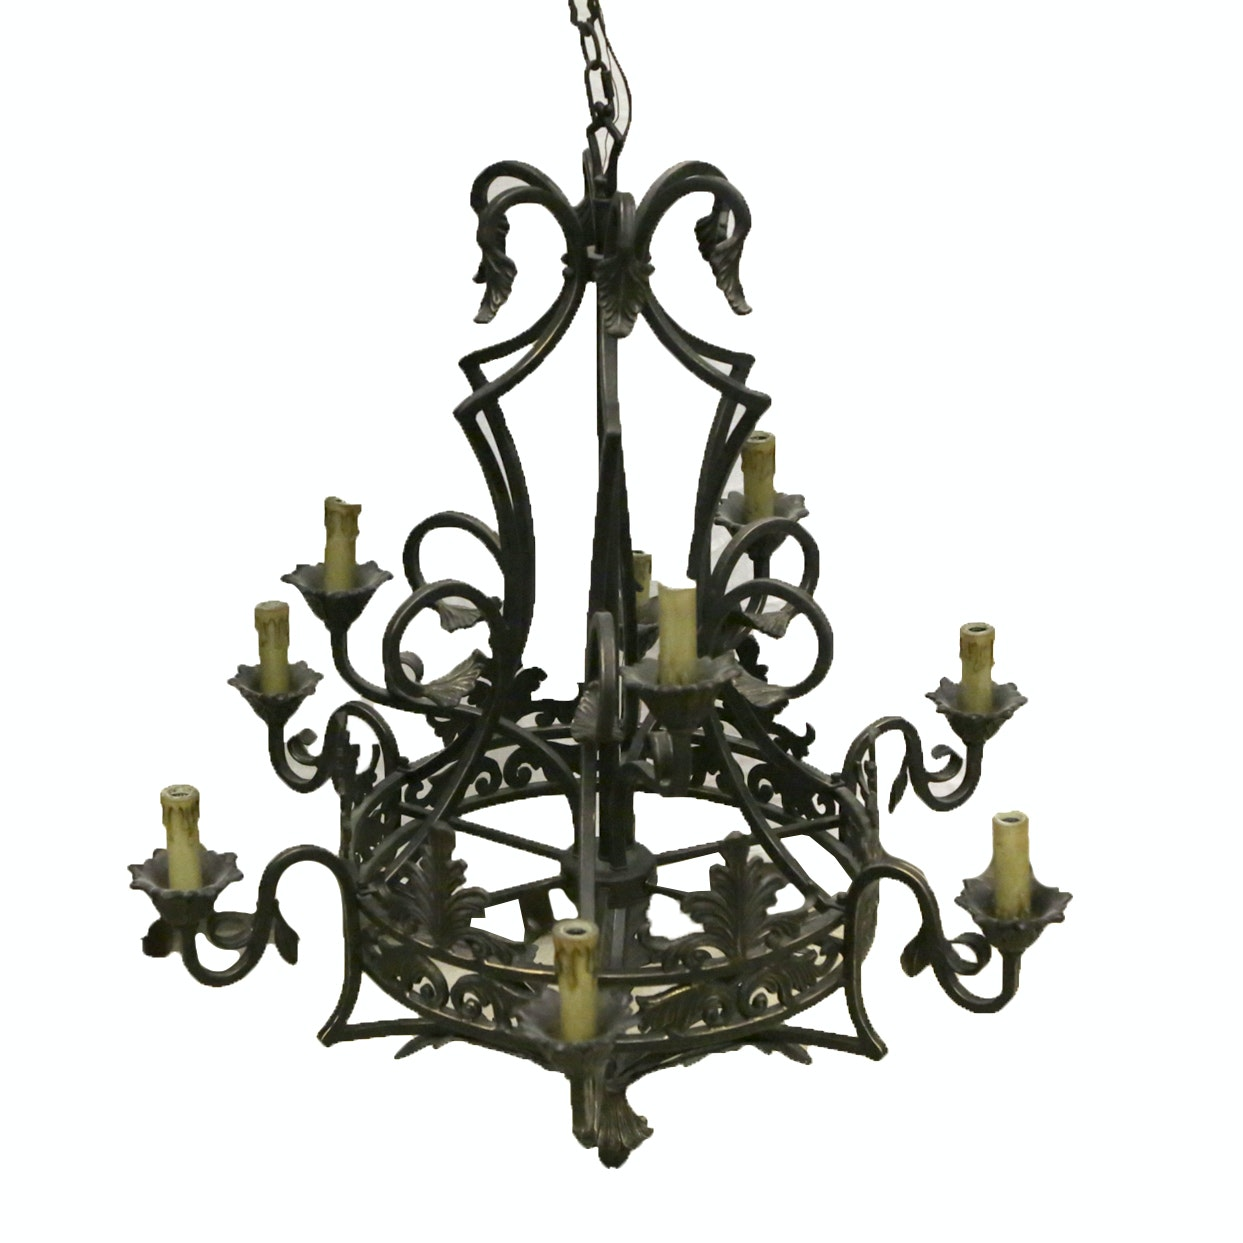 Gothic Style Cast and Wrought Iron Chandelier